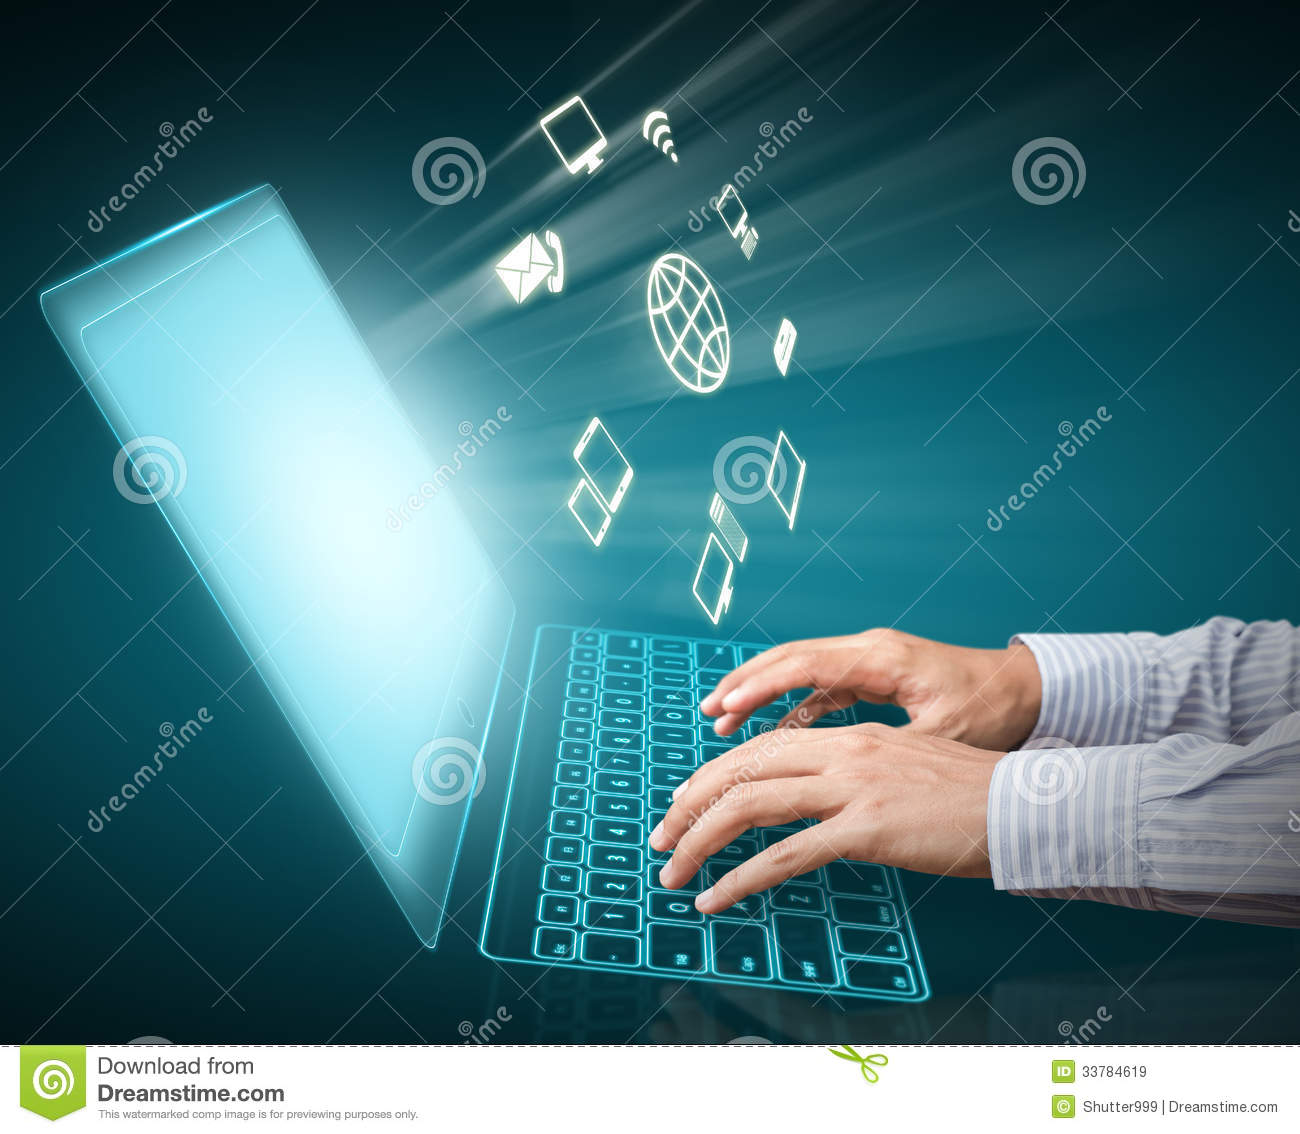 ... And Cloud Computing Royalty Free Stock Images - Image: 33784619: www.dreamstime.com/royalty-free-stock-images-computer-technology...